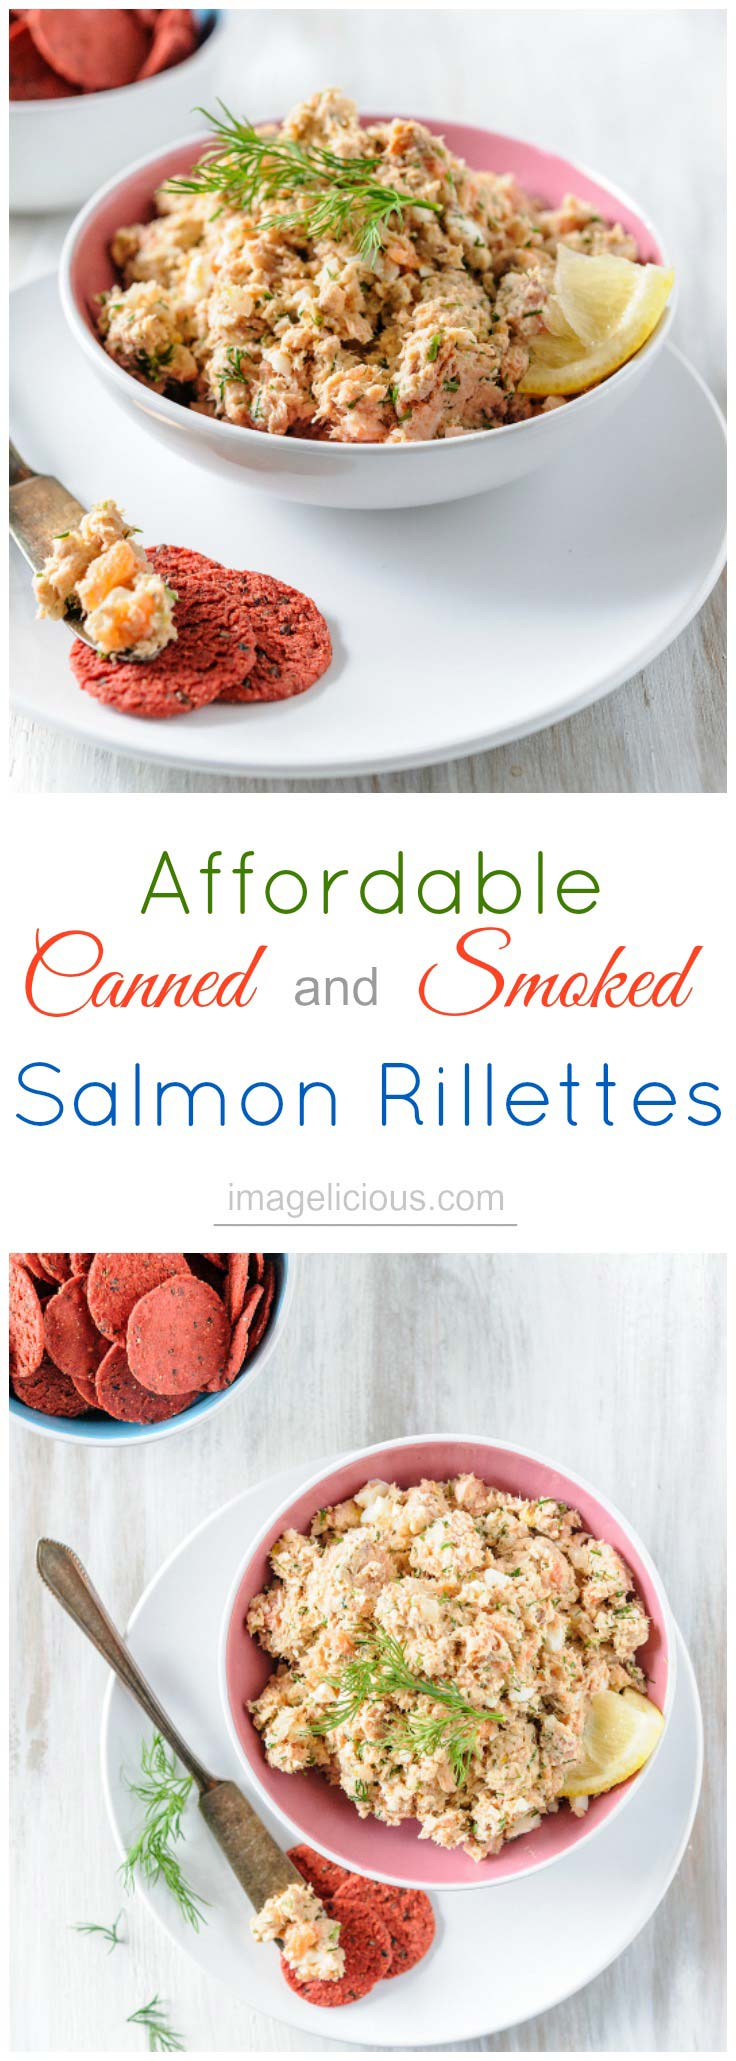 Affordable Canned and Smoked Salmon Rillettes is delicious, elegant and easy to prepare. Perfect to serve as an appetizer for a fancy dinner or family brunch   Imagelicious